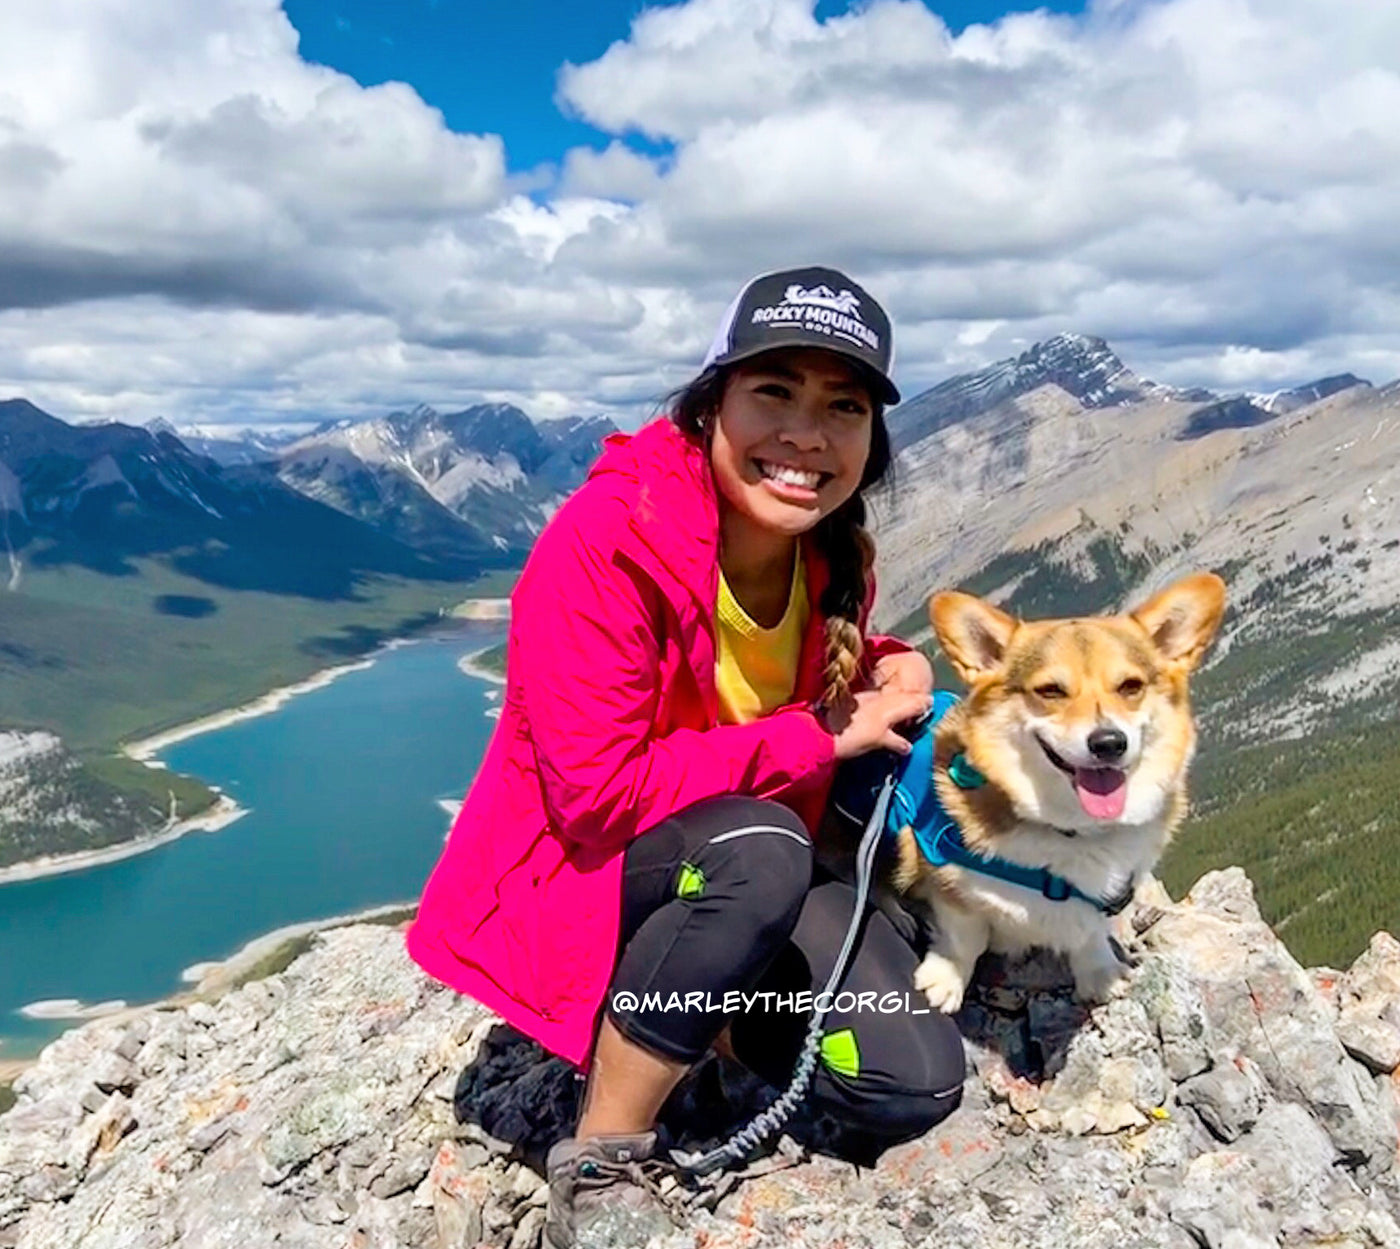 woman and dog corgi hiking mountains kananaskis alberta